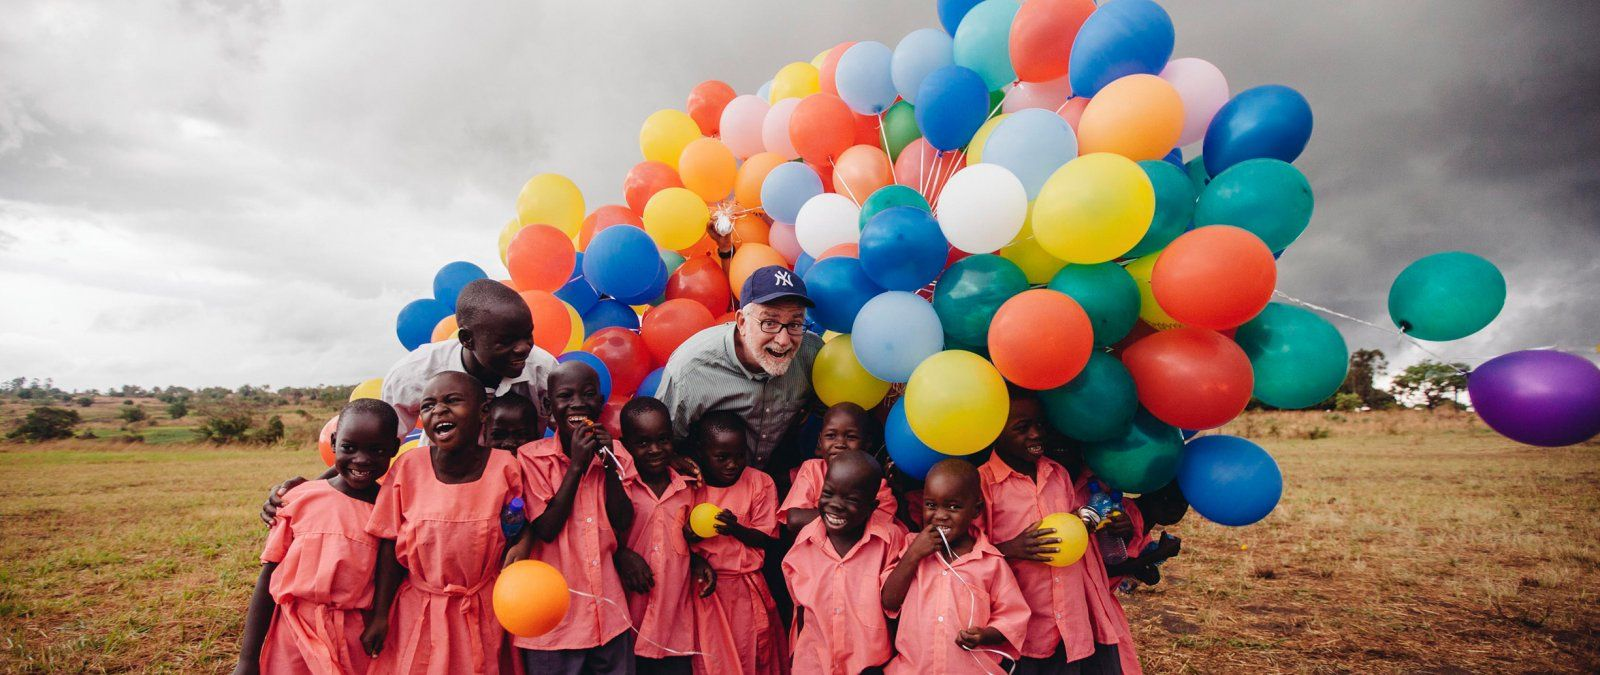 Bob Goff brings a large collection of colorful balloons to his Love Does students in Uganda